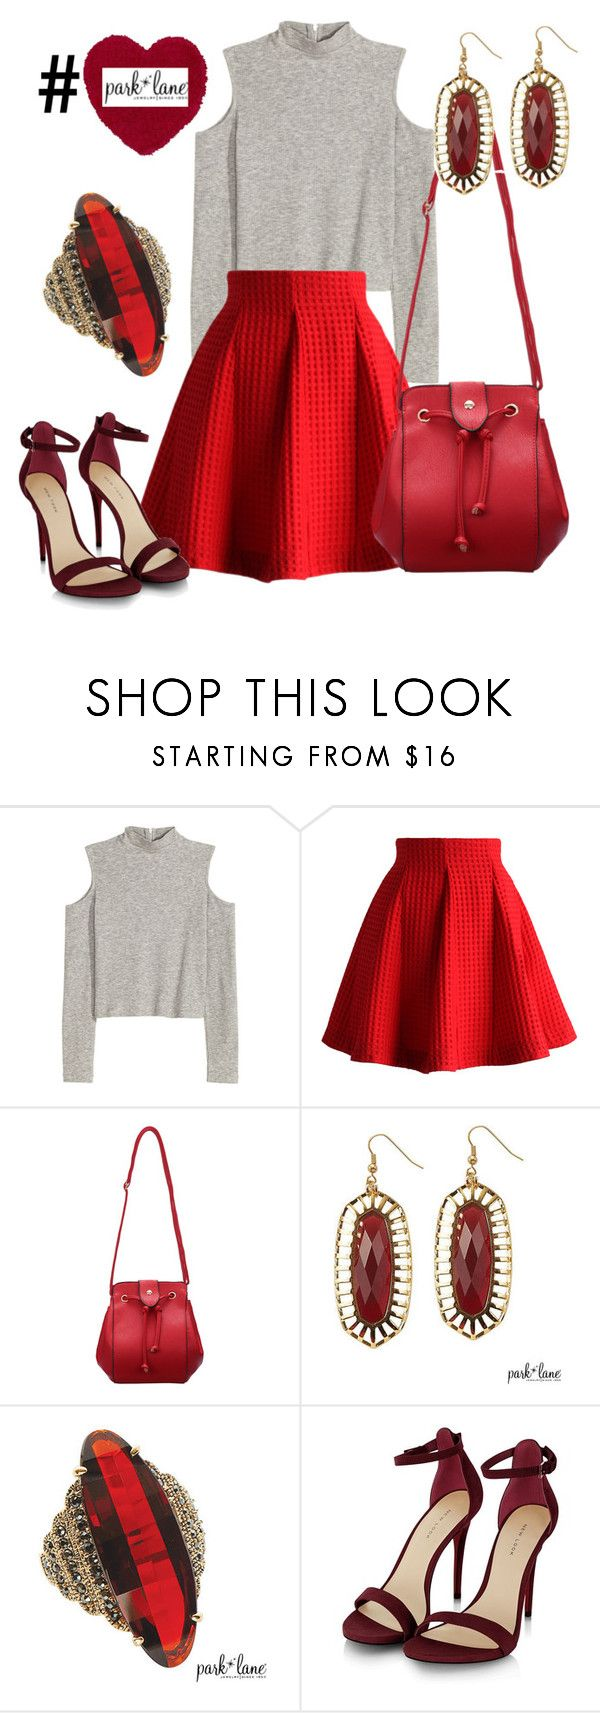 """""""#BeMine"""" by parklanejewelry on Polyvore featuring Chicwish, women's clothing, women's fashion, women, female, woman, misses, juniors and parklanejewelry"""